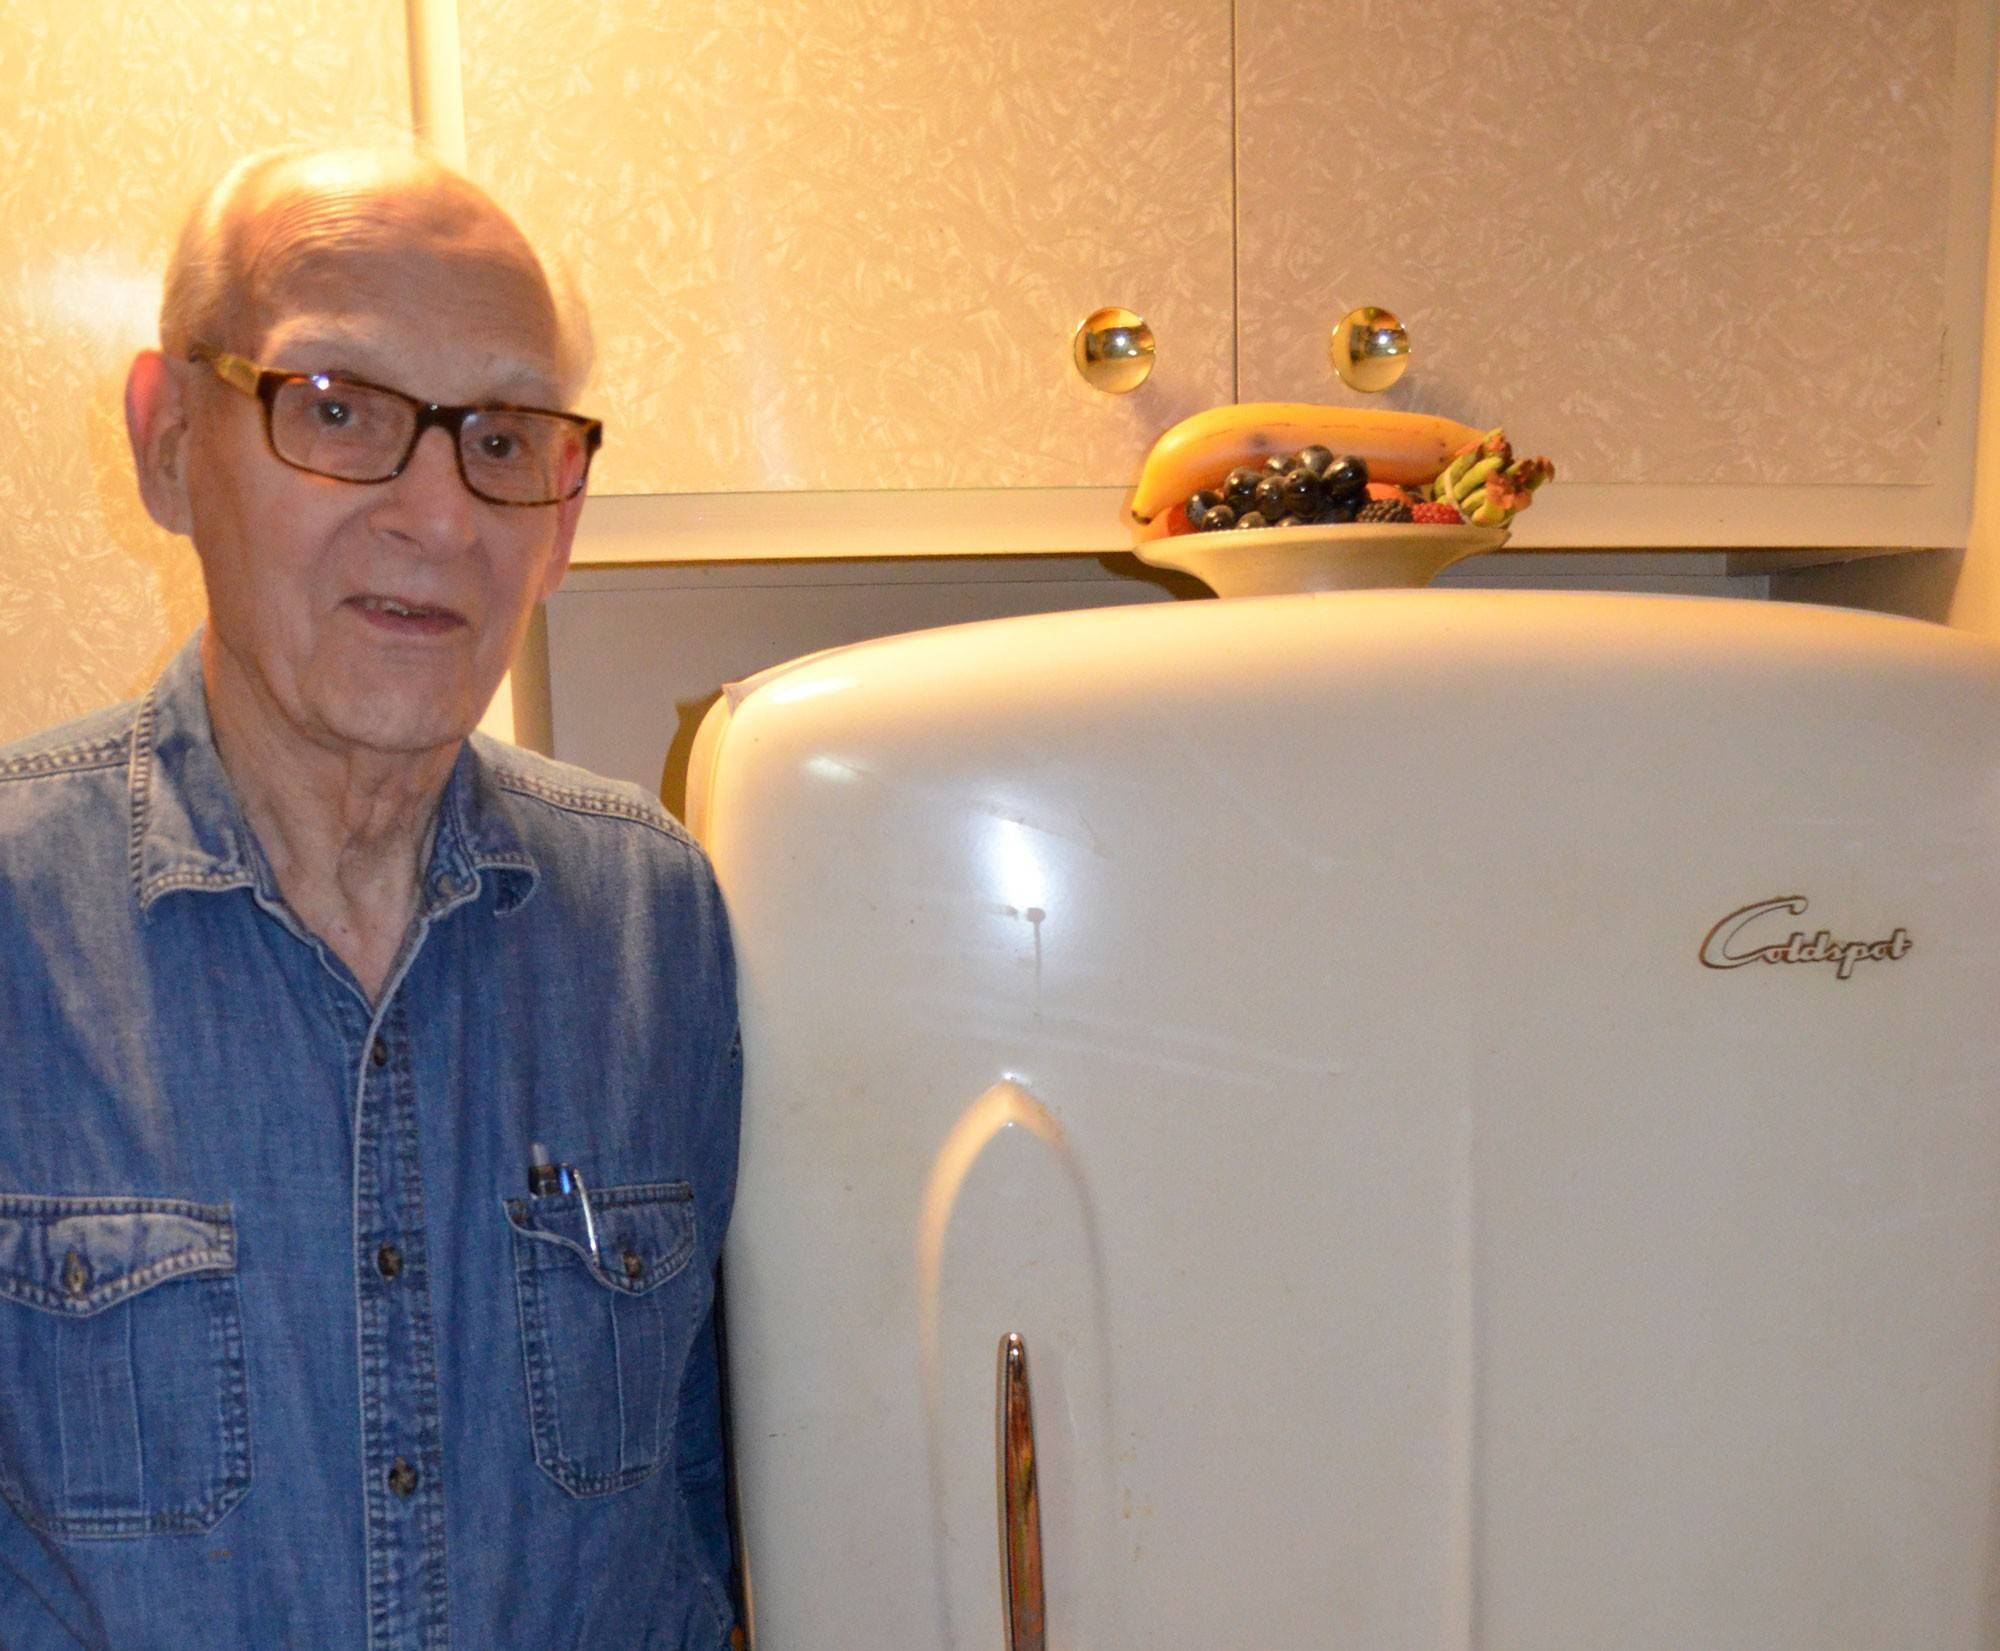 Stephanie Penick's dad, Don Crookston, with his prized 66-year-old Sears Roebuck Coldspot refrigerator.